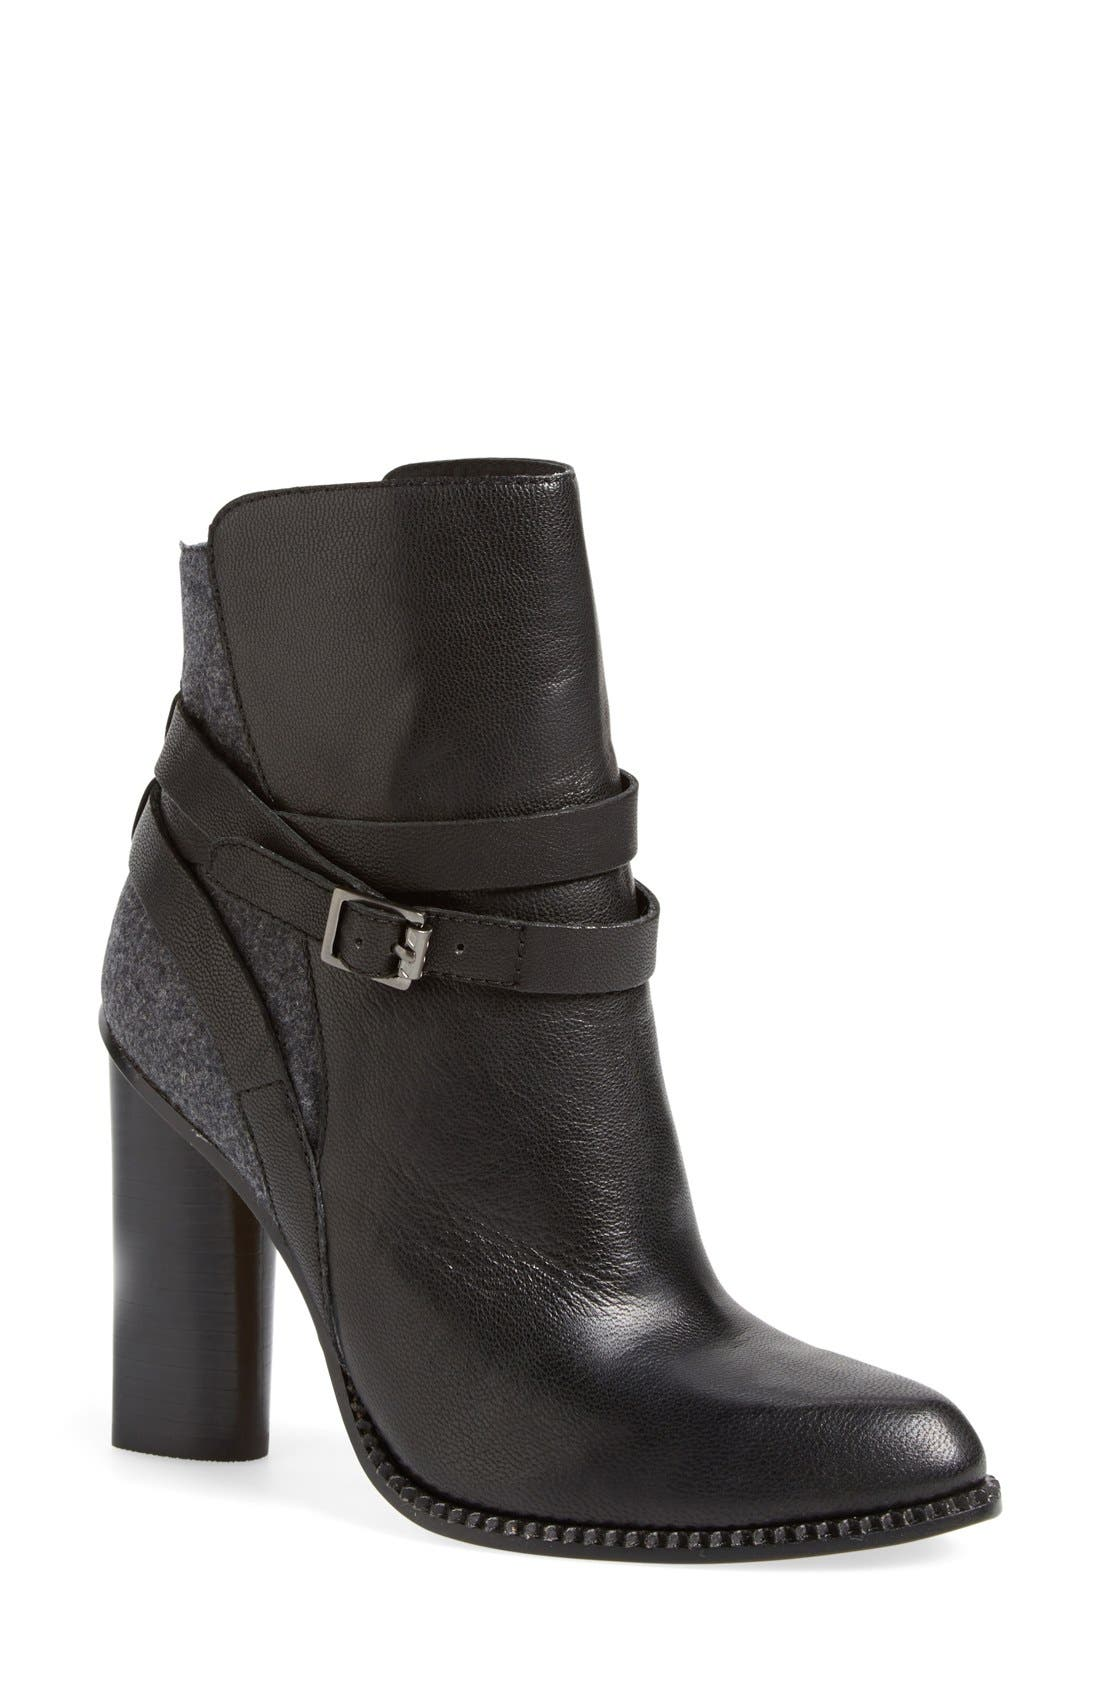 Alternate Image 1 Selected - Cynthia Vincent 'Hue' Boot (Women)